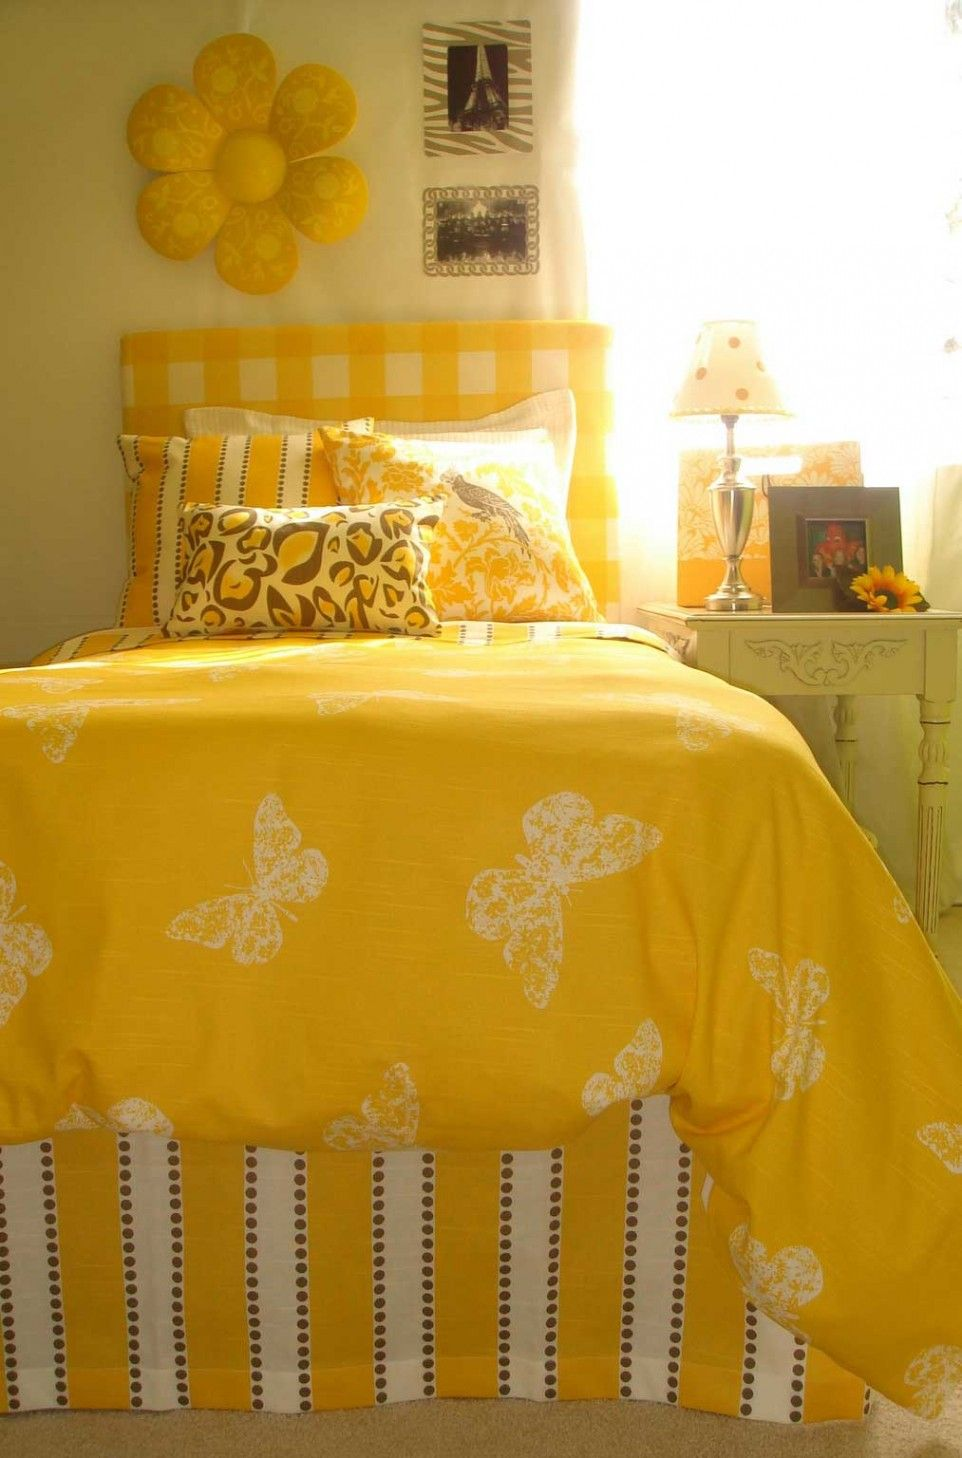 Home Interior, Dorm Room Ideas for Student: Yellow Dorm Room Ideas ...